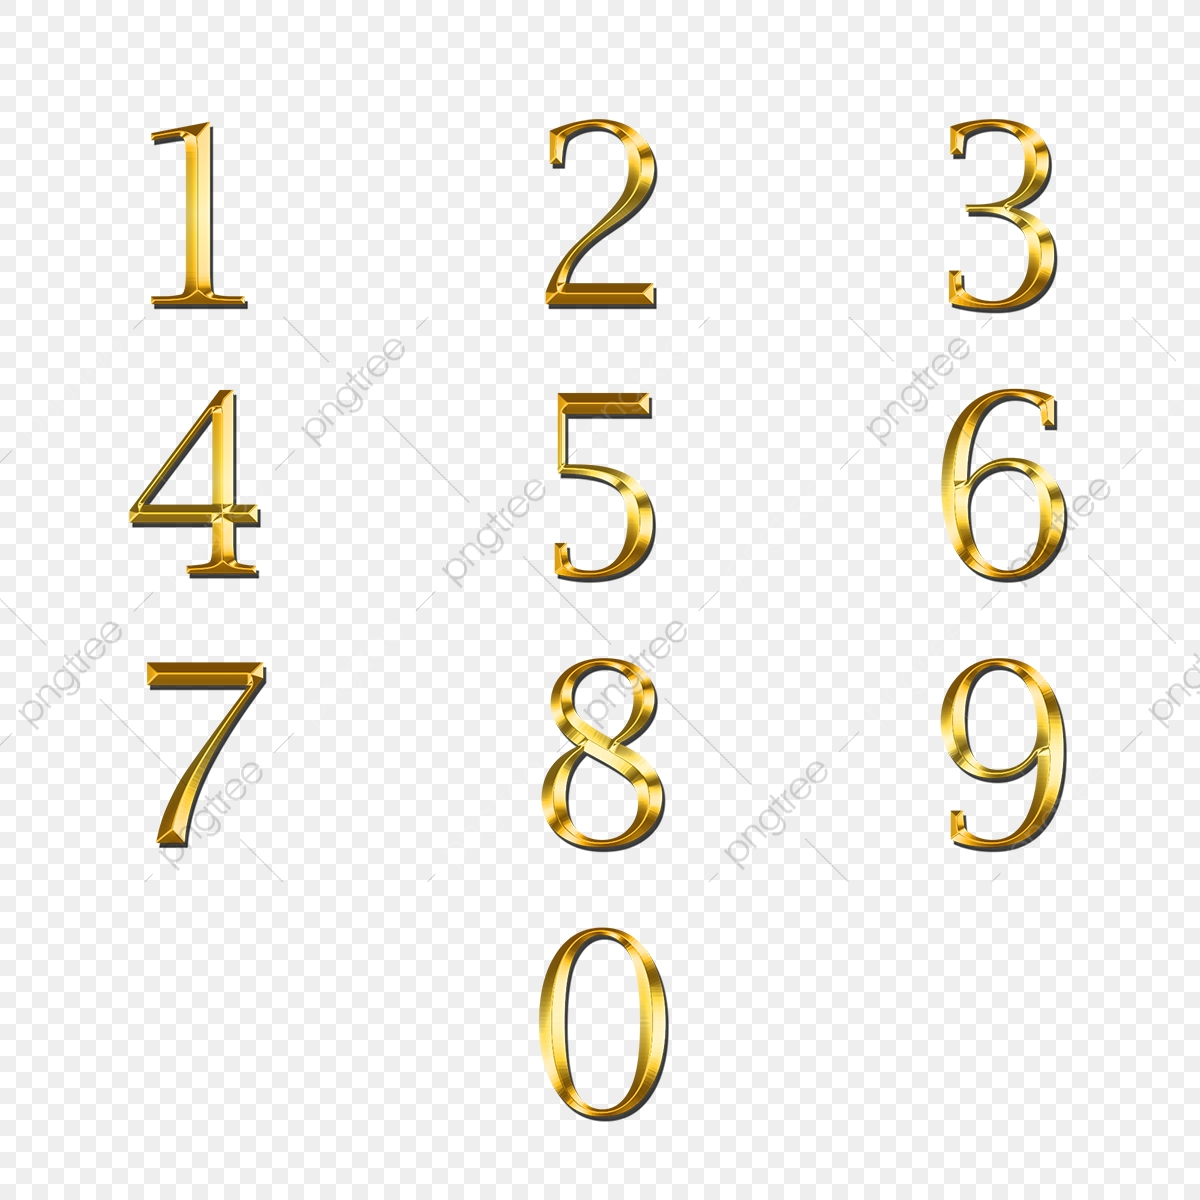 Golden Numbers, Gold, Effect, Mockup PNG Transparent Clipart Image.